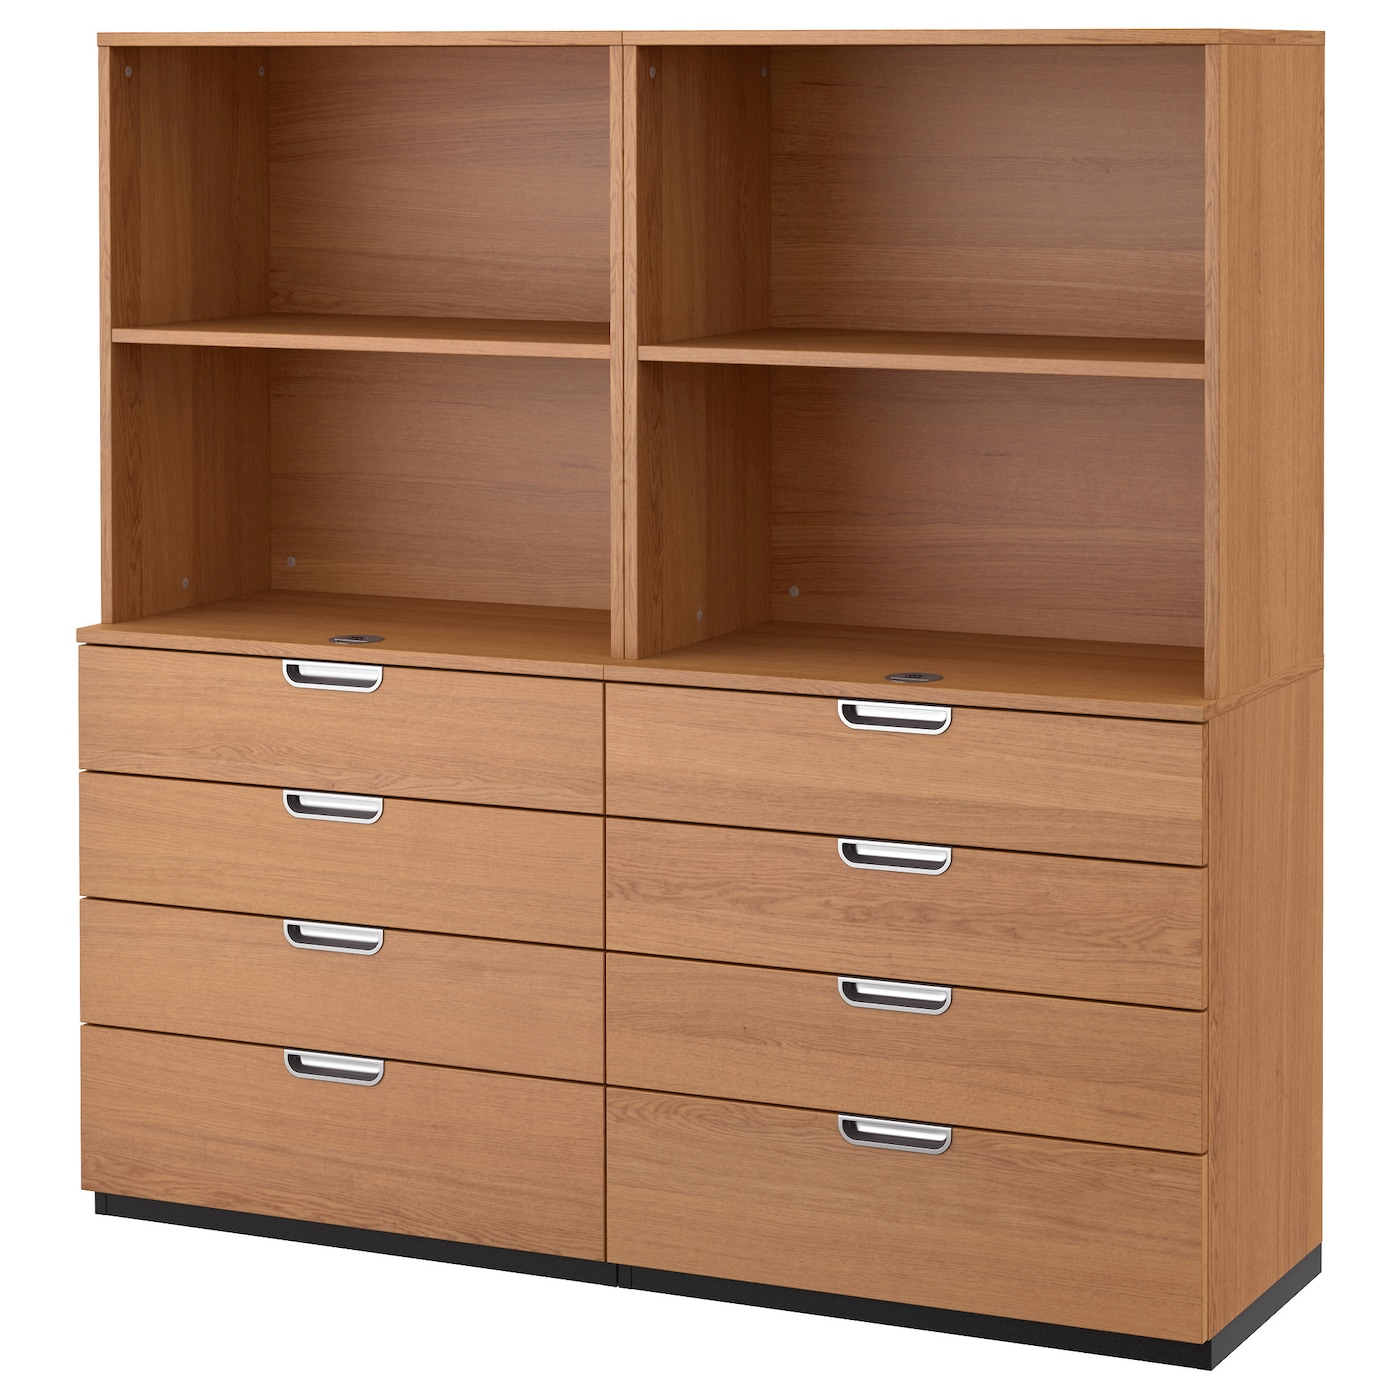 galant storage combination with drawers oak veneer 160x160